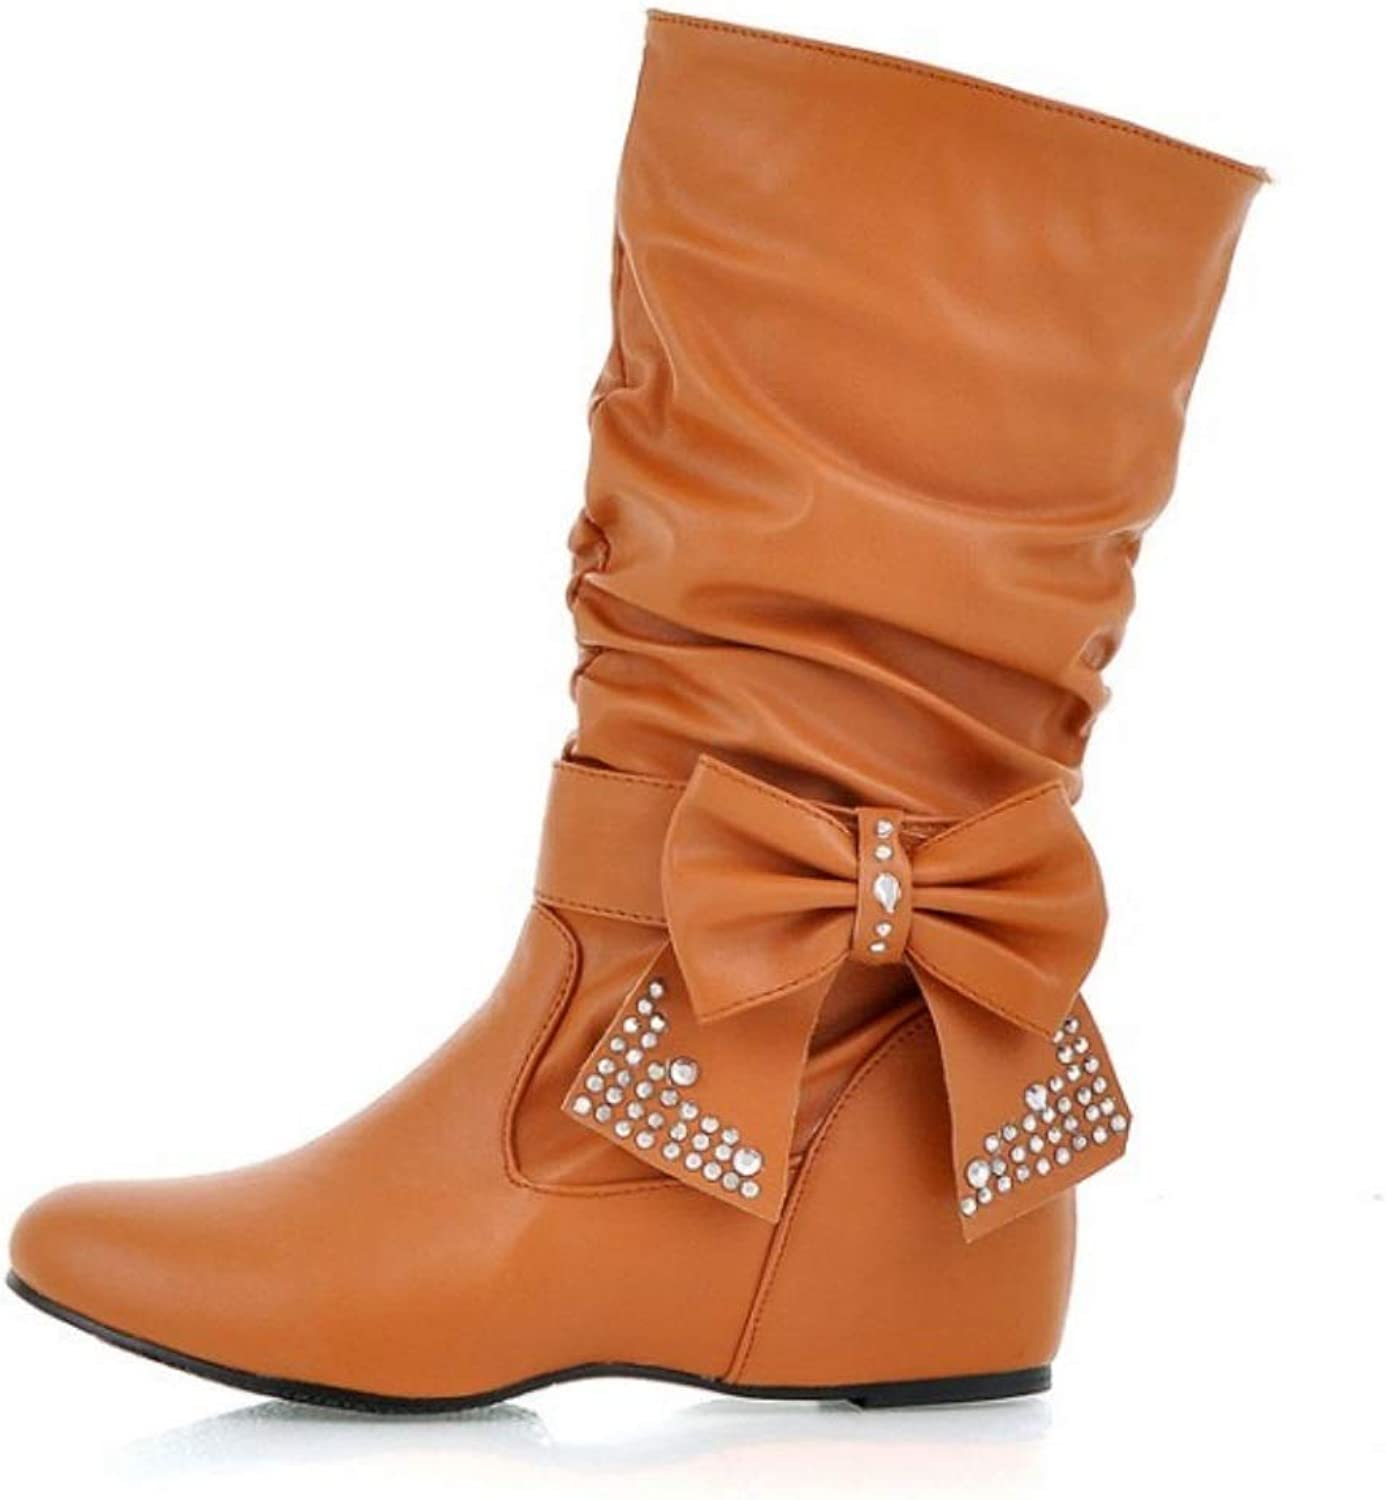 Ladies Wedge Calf Boots Biker Boots Women Bow Mid Boot Heels Boot Large Size shoes Autumn Winter Ruched Boots